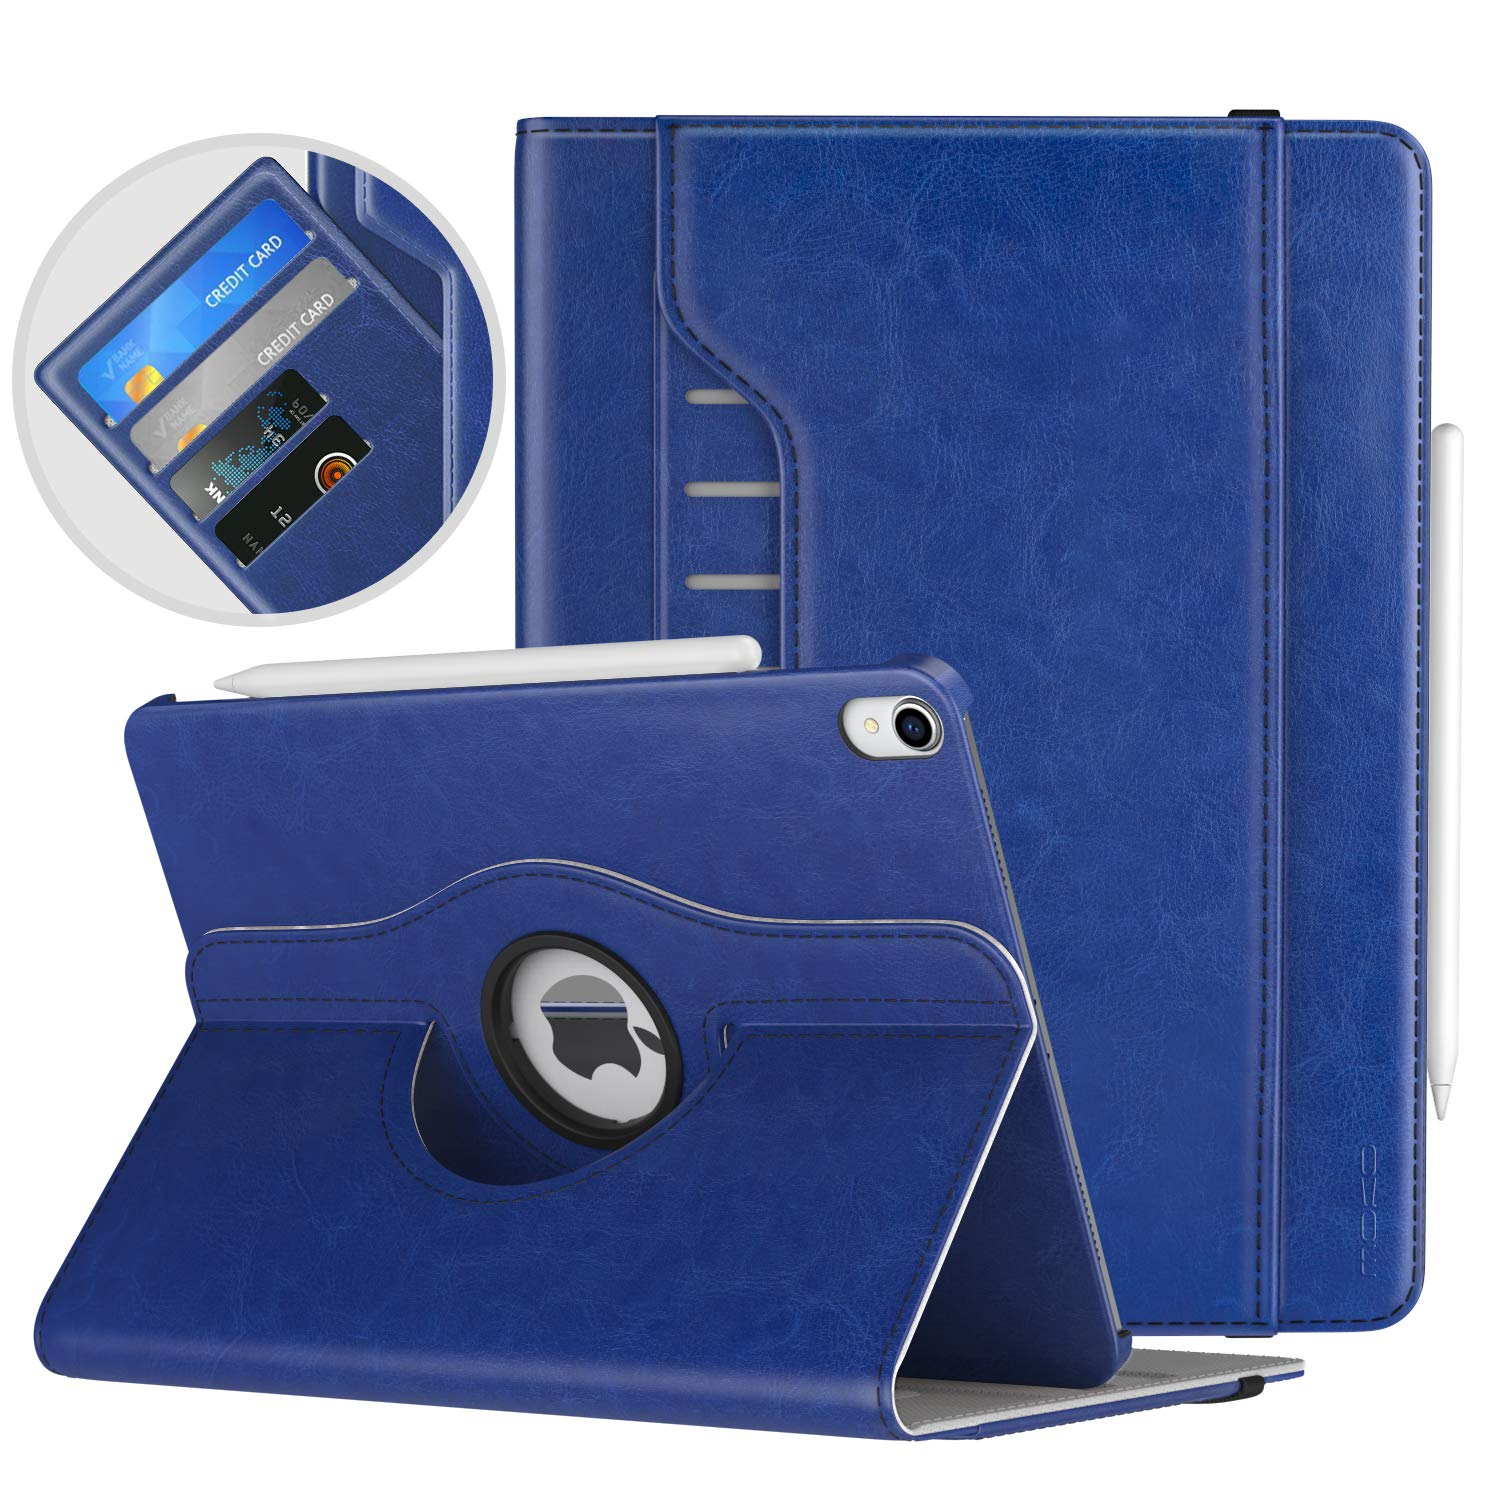 """MoKo Case Fit iPad Pro 11"""" 2018 - Support Pencil Charging - 360 Degree Rotating Leather Cover Slim Folio Multi-Angle Viewing Stand Case, Auto Wake/Sleep Fit iPad Pro 11 2018 Case - Indigo"""